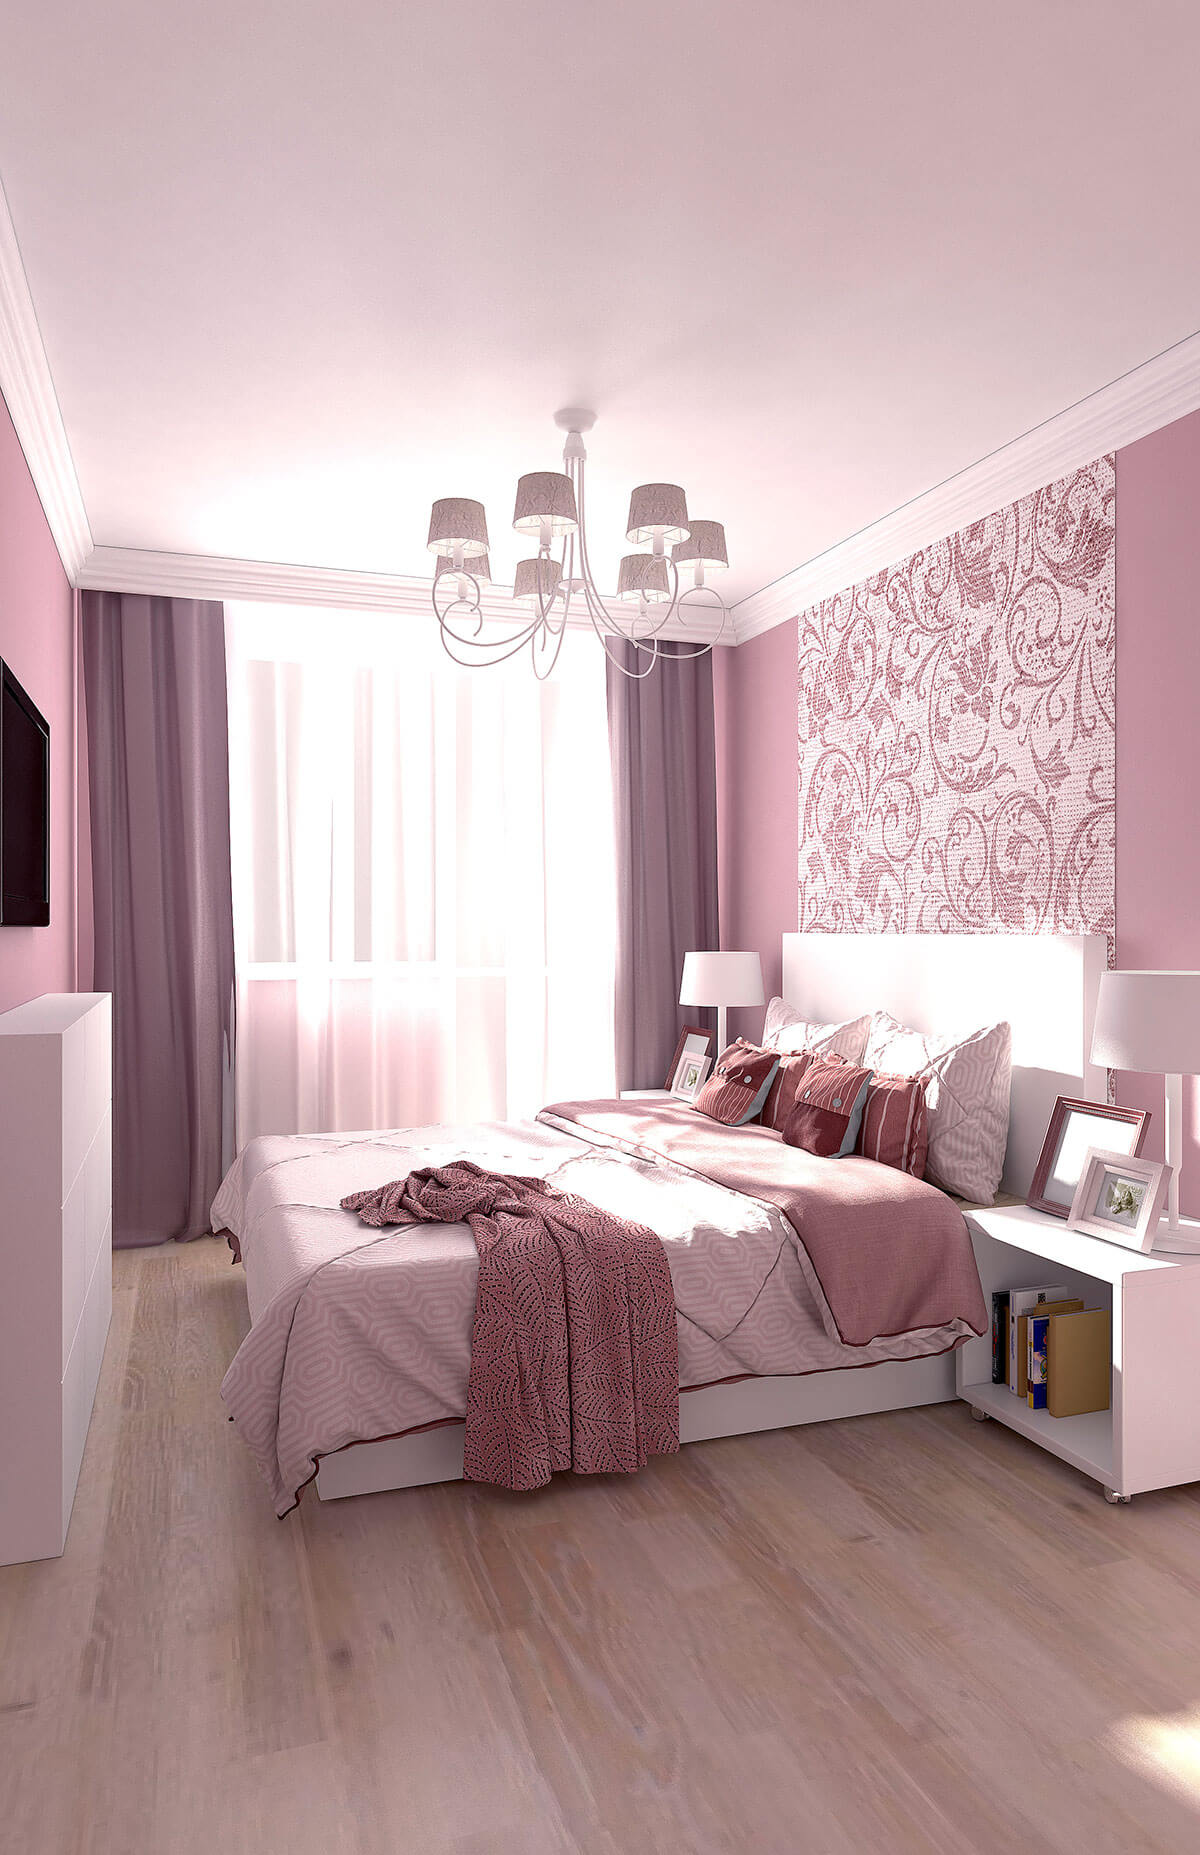 3D interior design, 3D visualization of the bedroom, 3D modeling, London, UK.